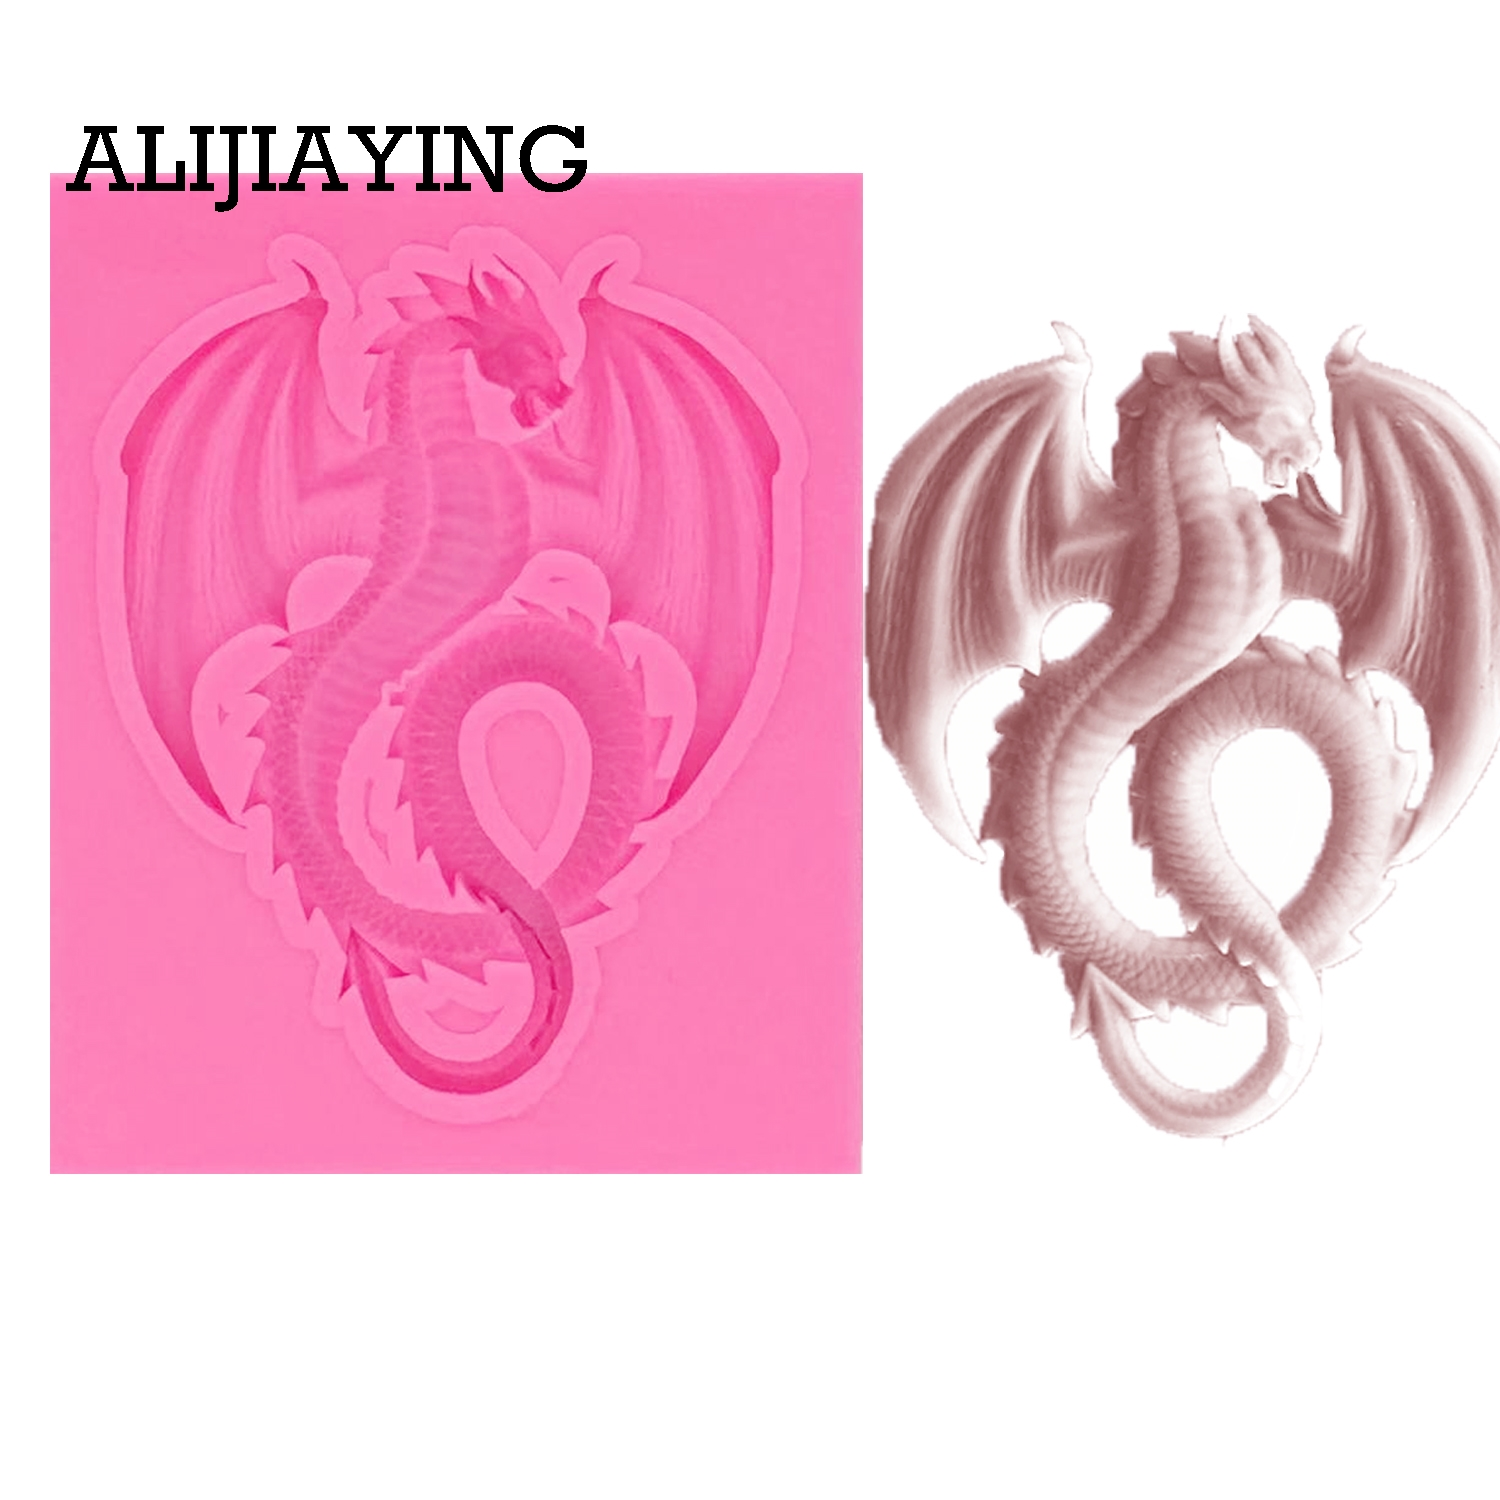 M1012 1Pcs Cartoon Flying dragon Sugarcraft Silicone mold cake decorating tools Fondant chocolate moulds Polymer Clay Resin